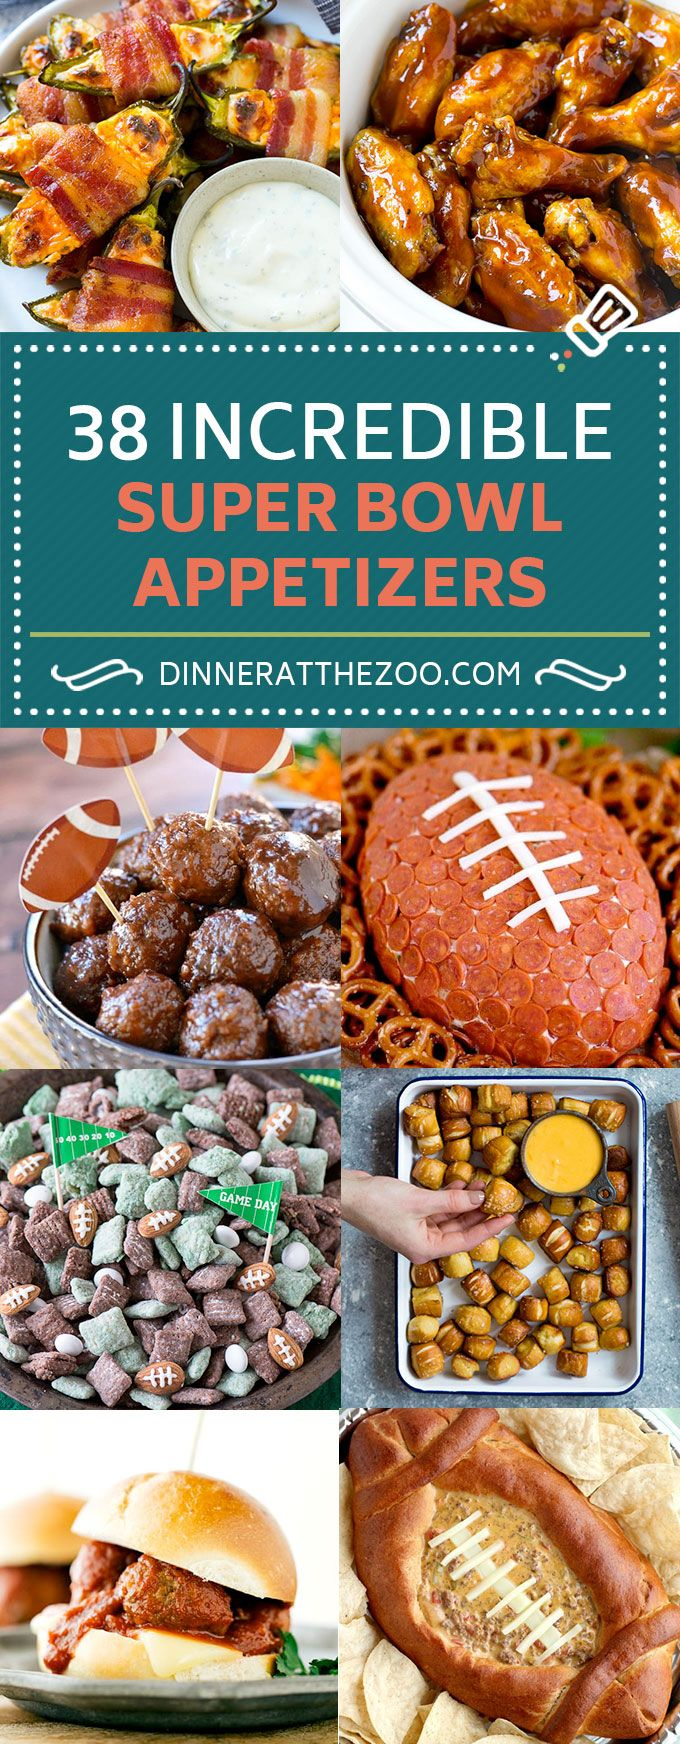 38 Super Bowl Appetizer Recipes